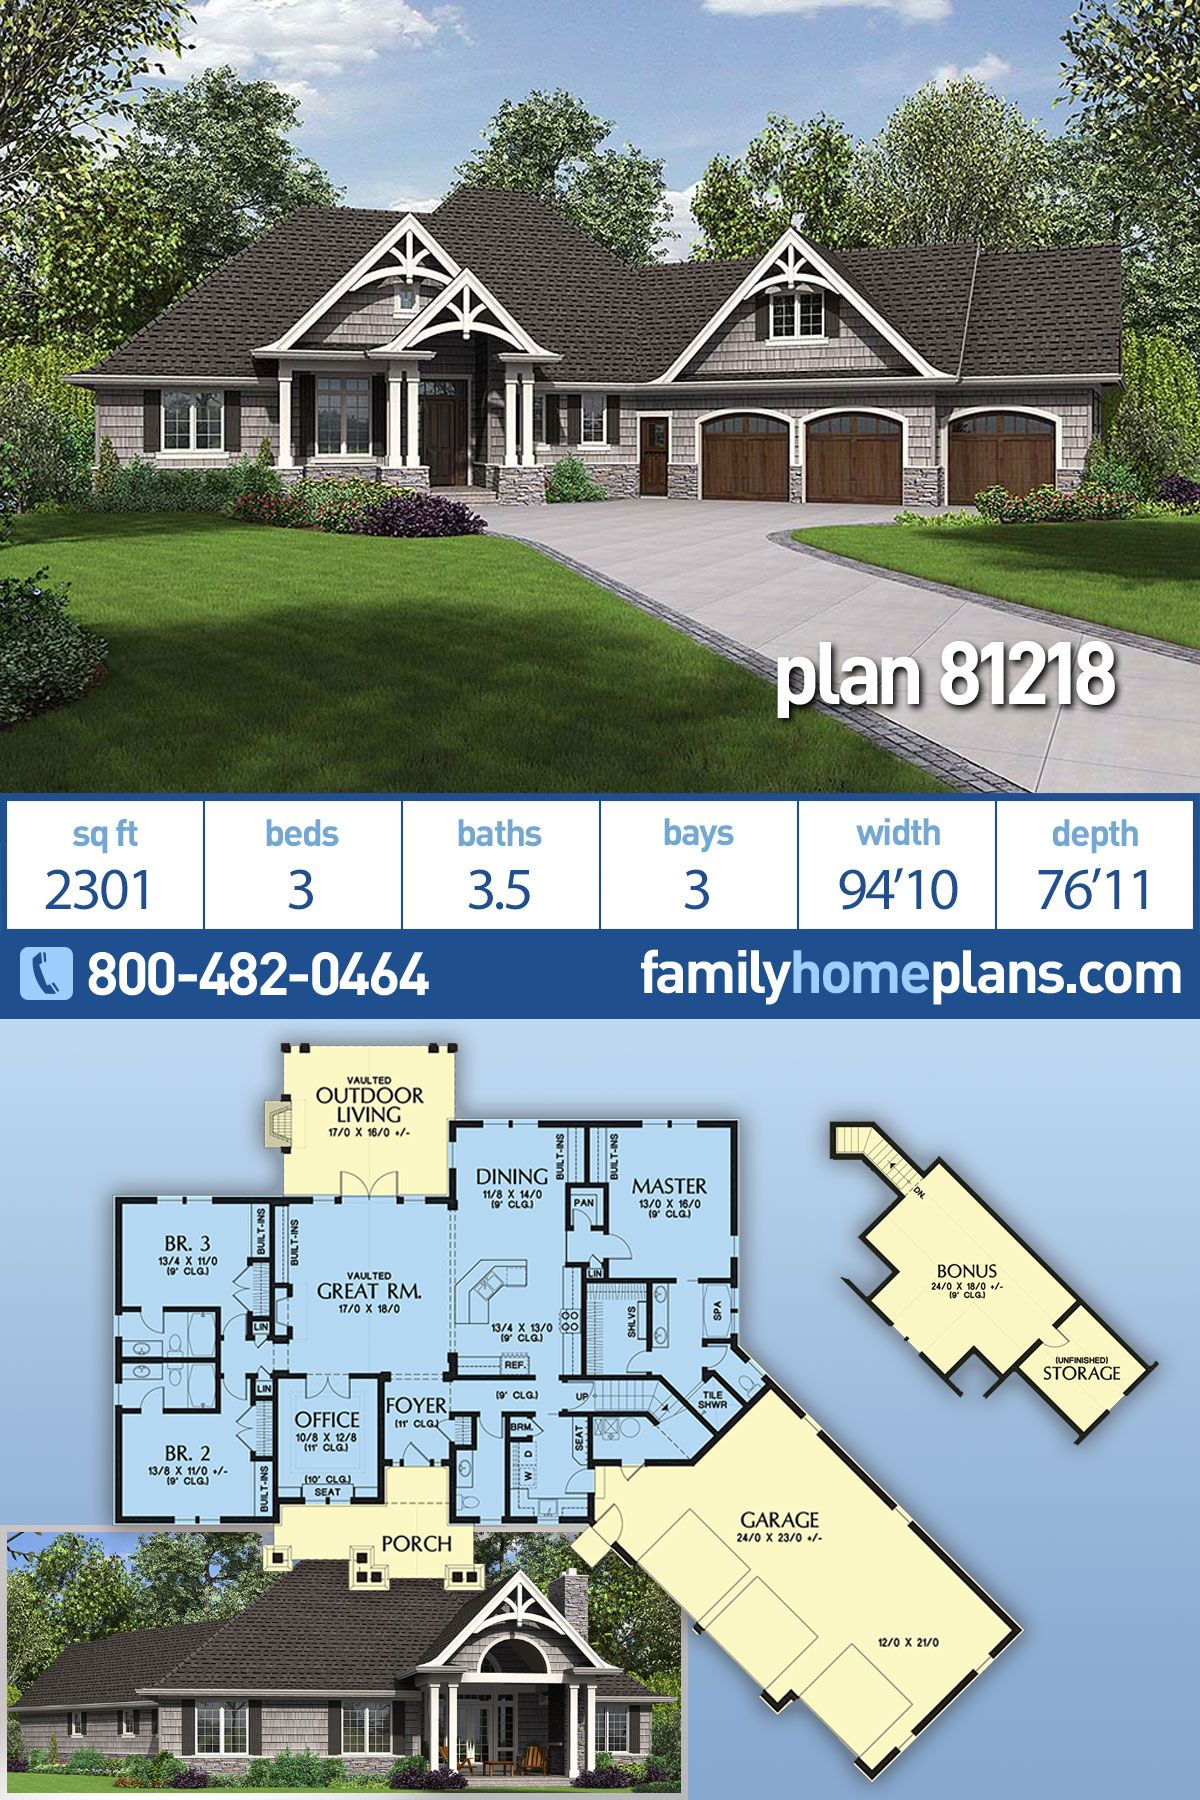 Craftsman Style House Plan 81218 With 3 Bed 4 Bath 3 Car Garage Craftsman Style House Plans Craftsman House Plans Family House Plans